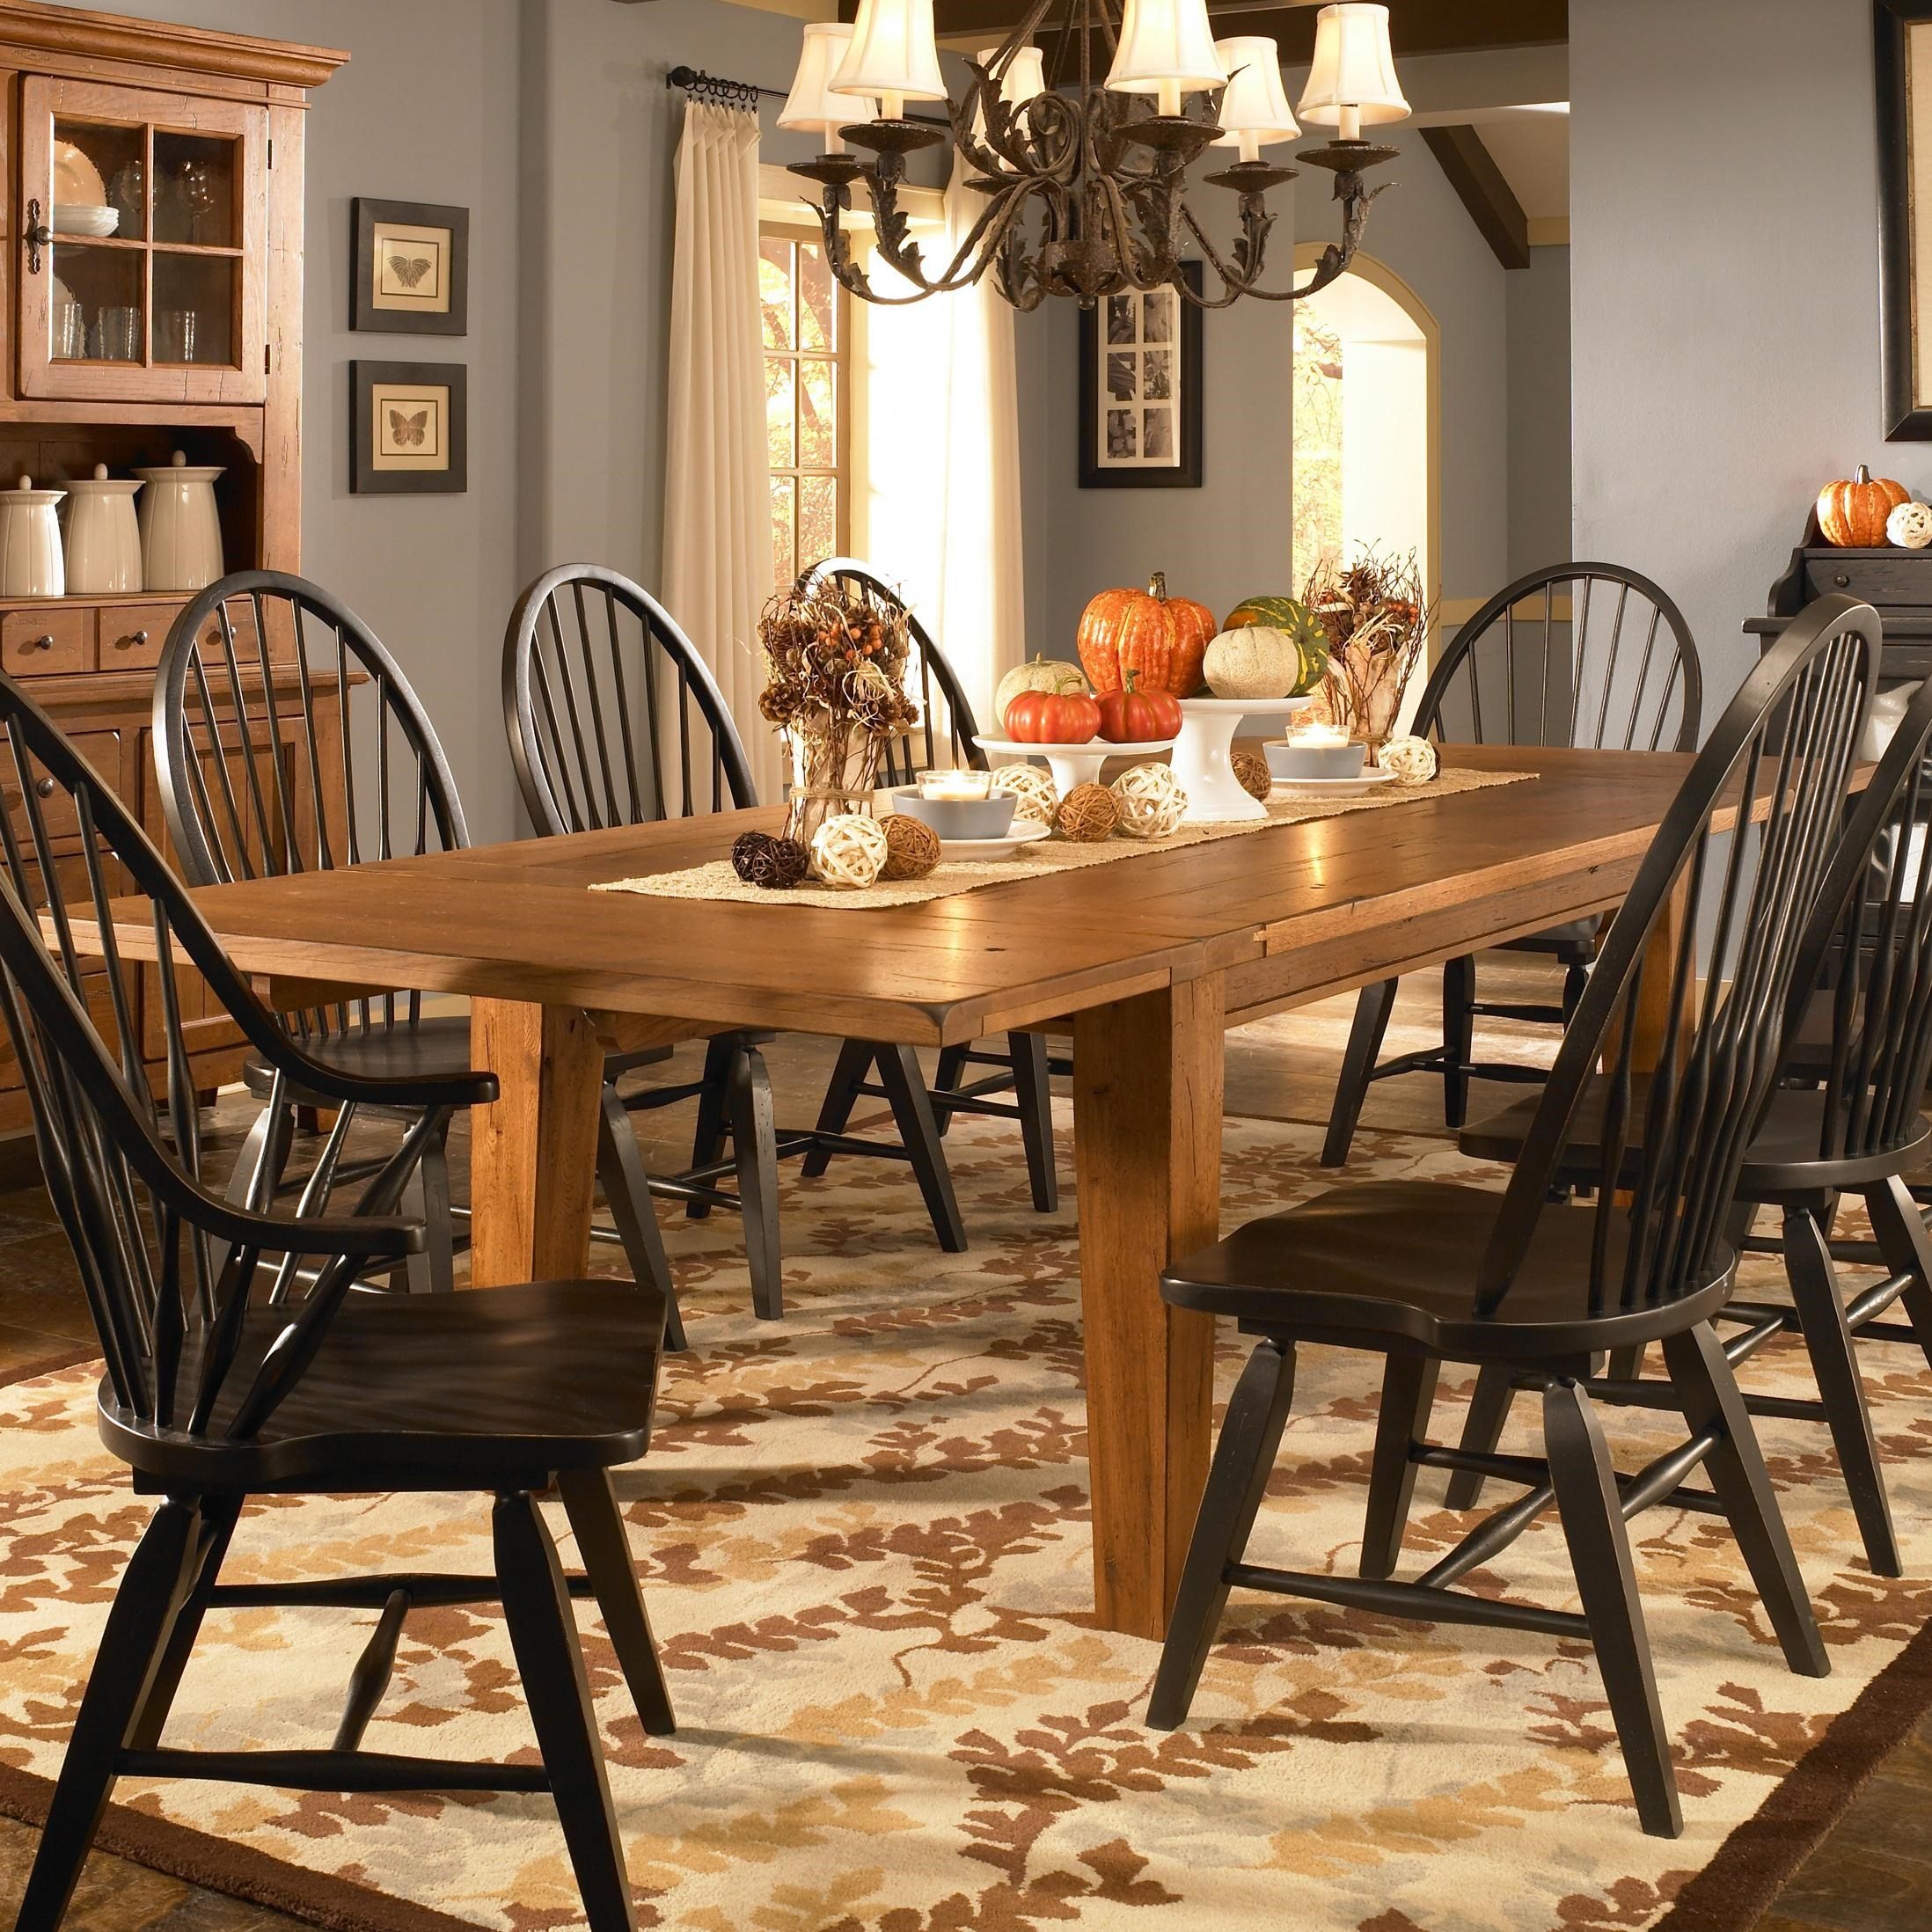 Broyhill Furniture Attic Heirlooms Leg Dining Table With Leaves   Baeru0027s  Furniture   Dining Tables